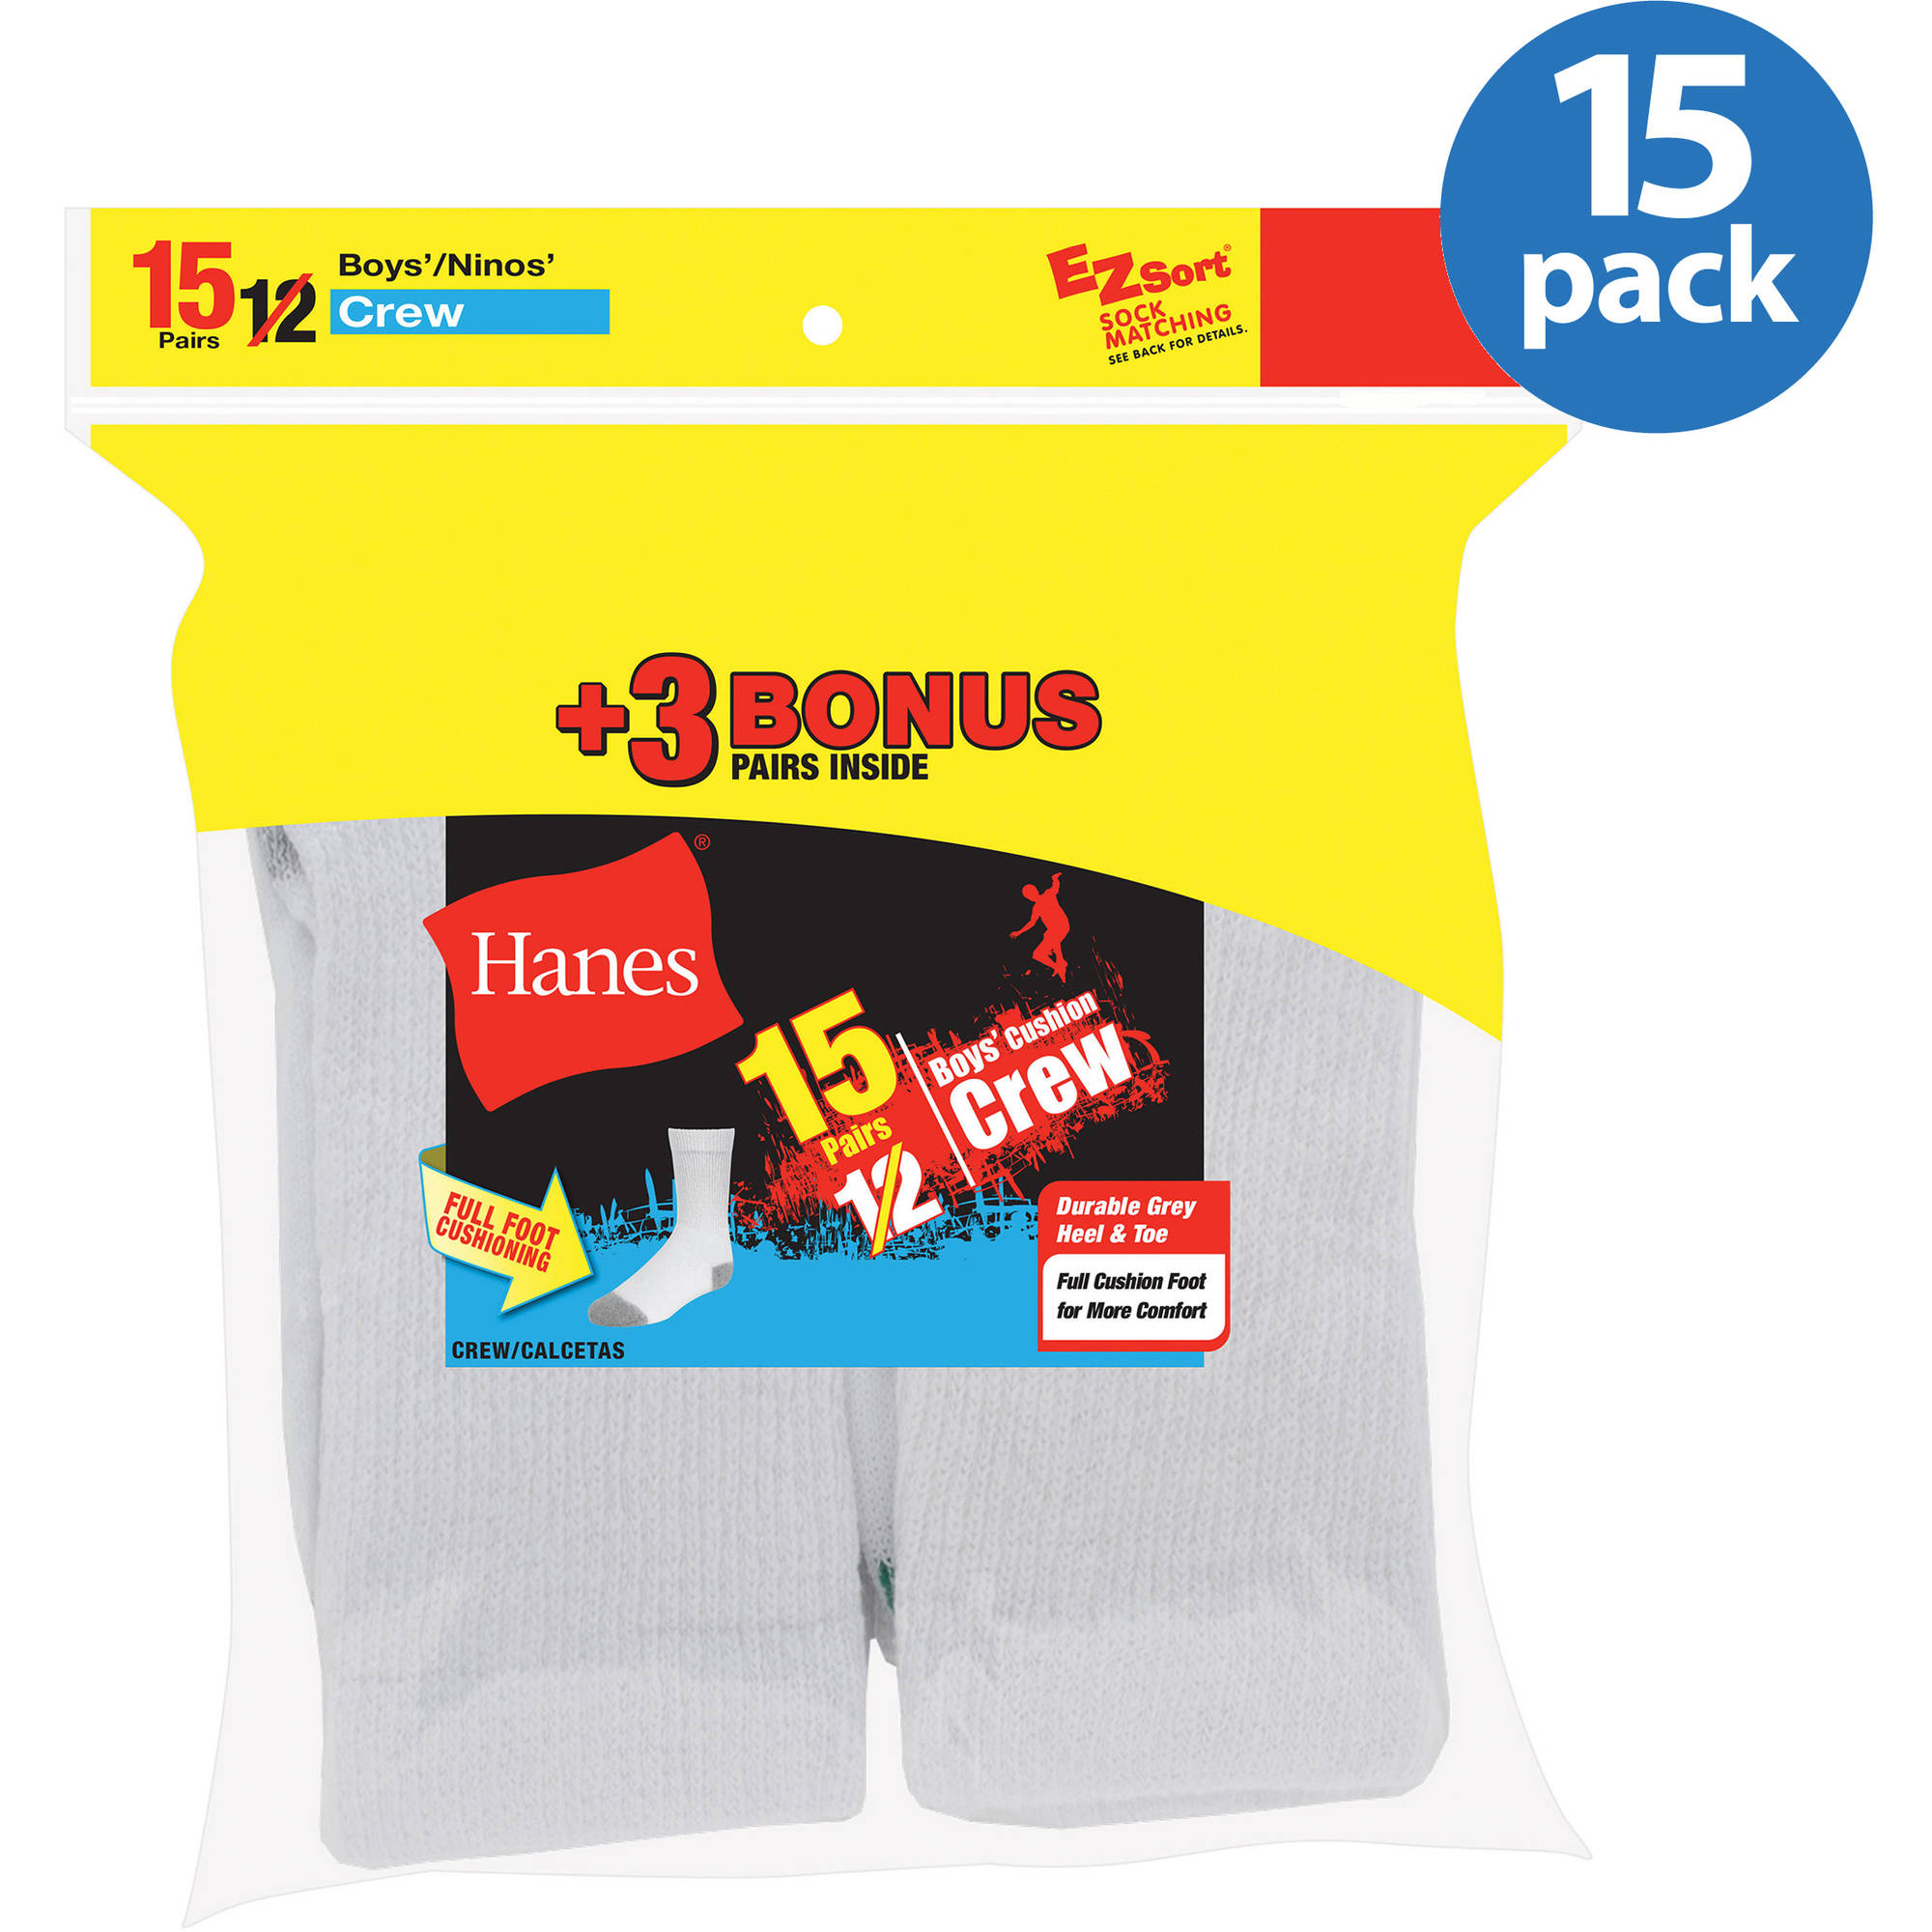 Hanes Boys' Full Cushion White Crew Socks, 12 + 3 Bonus Pack